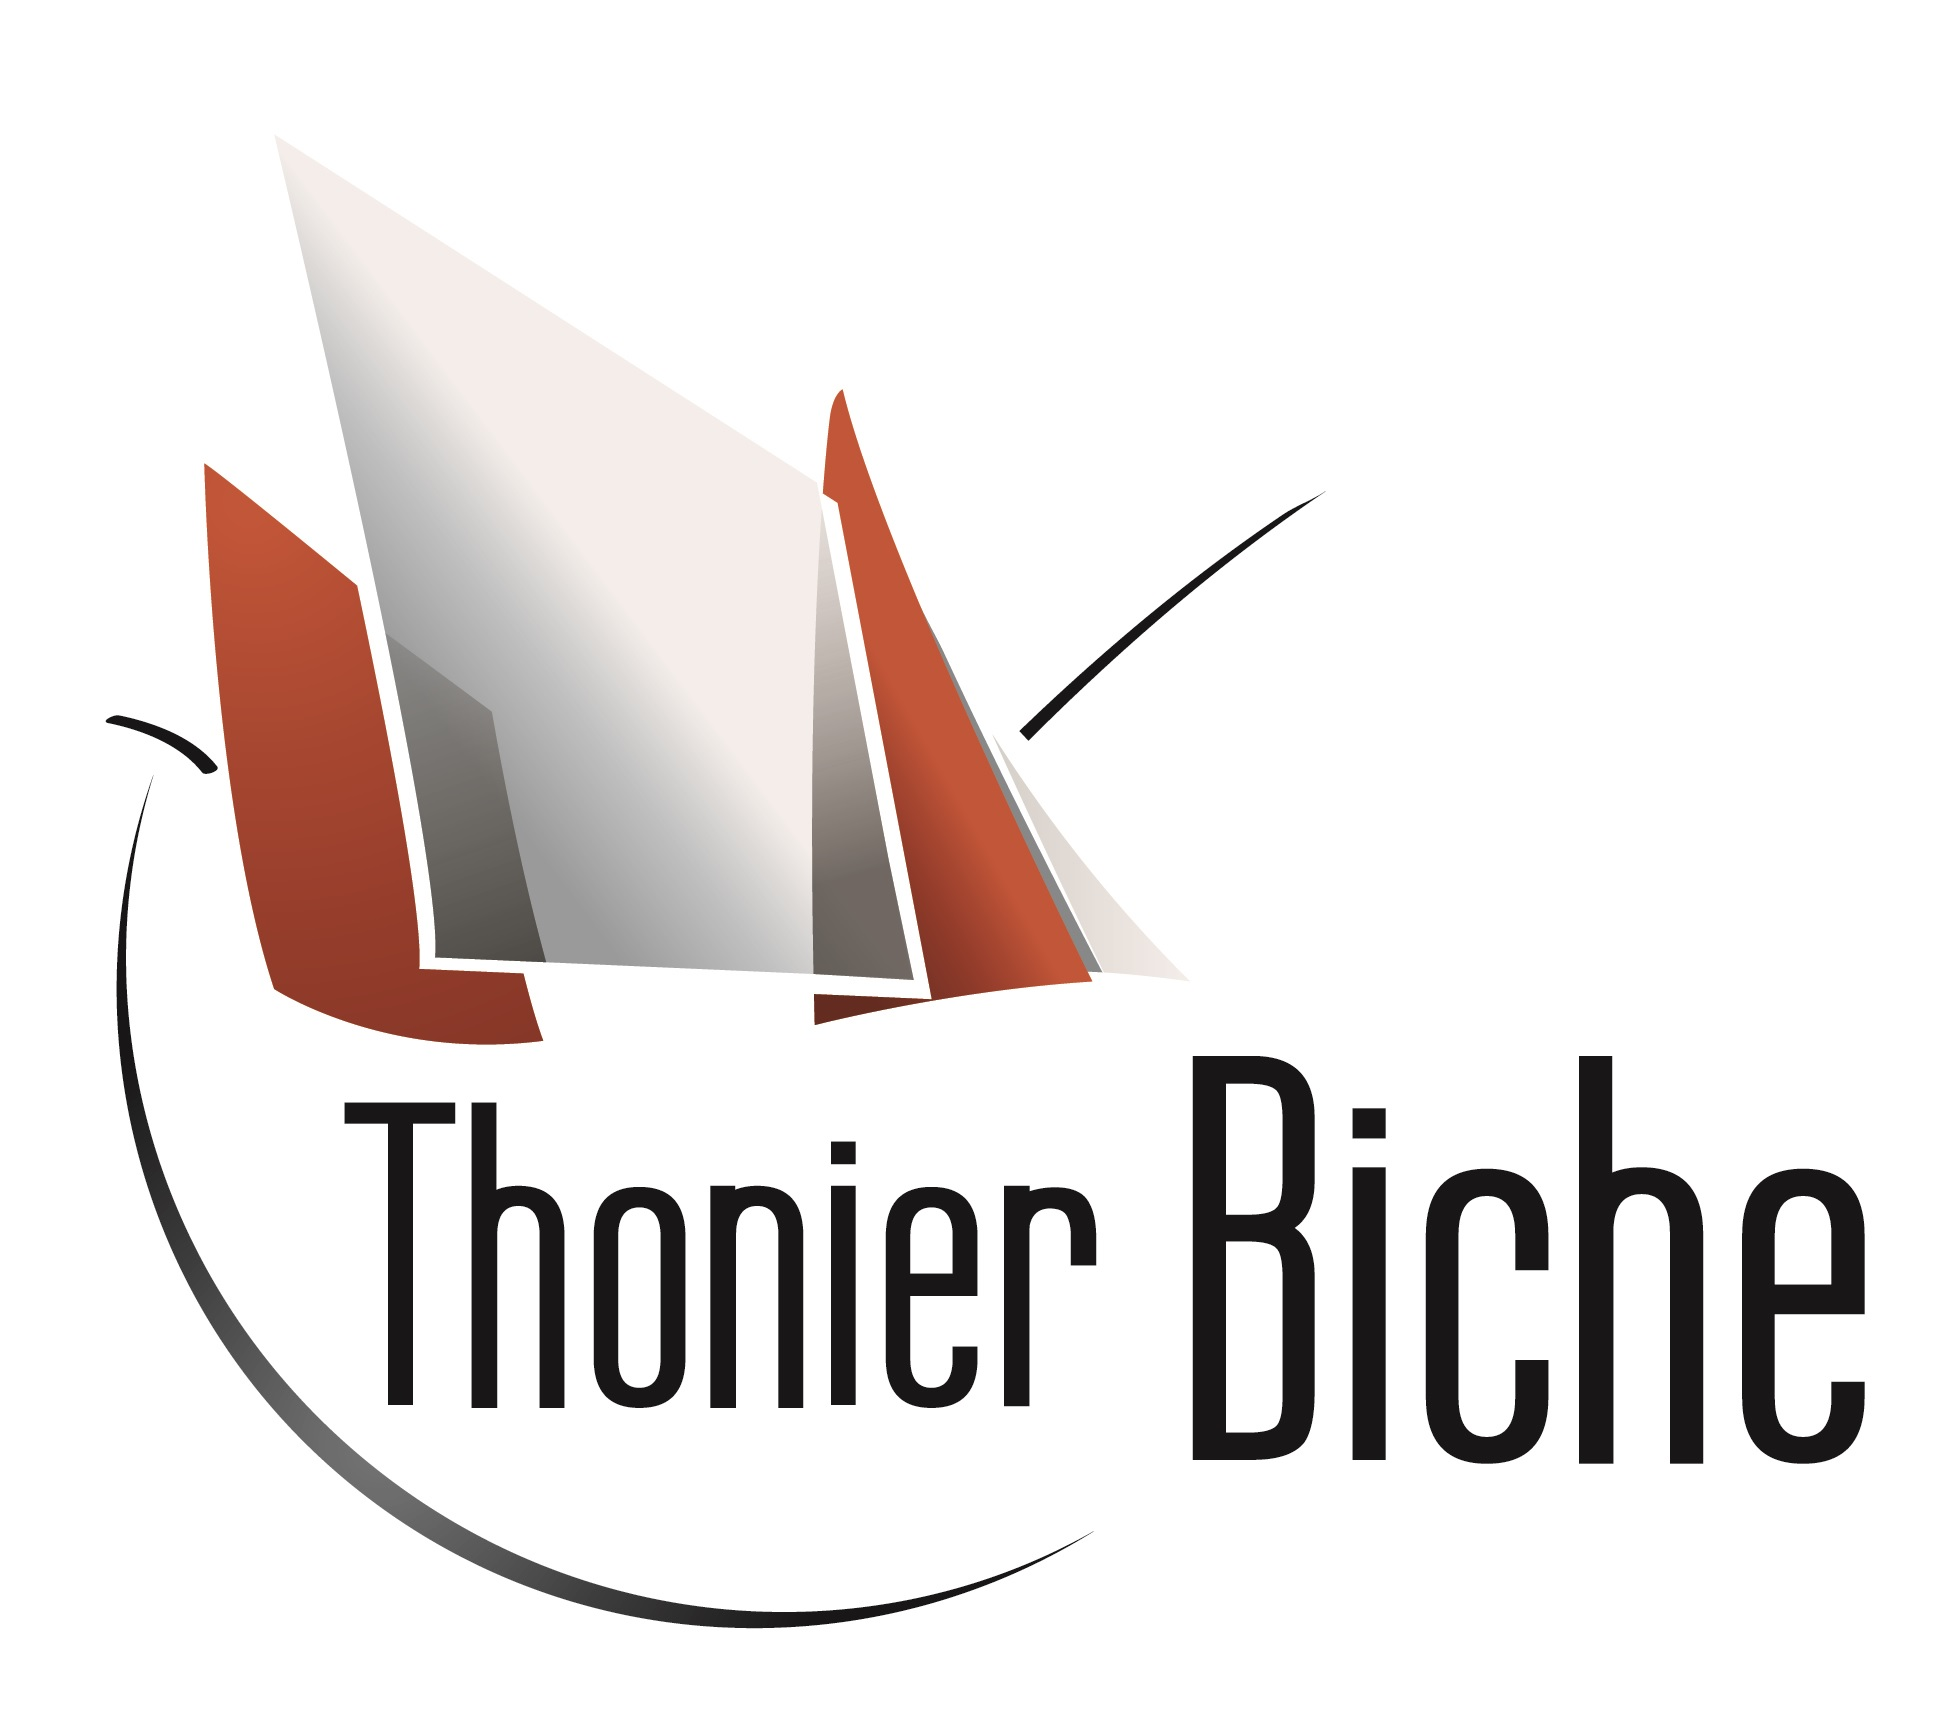 la-boutique-du-thonier-biche